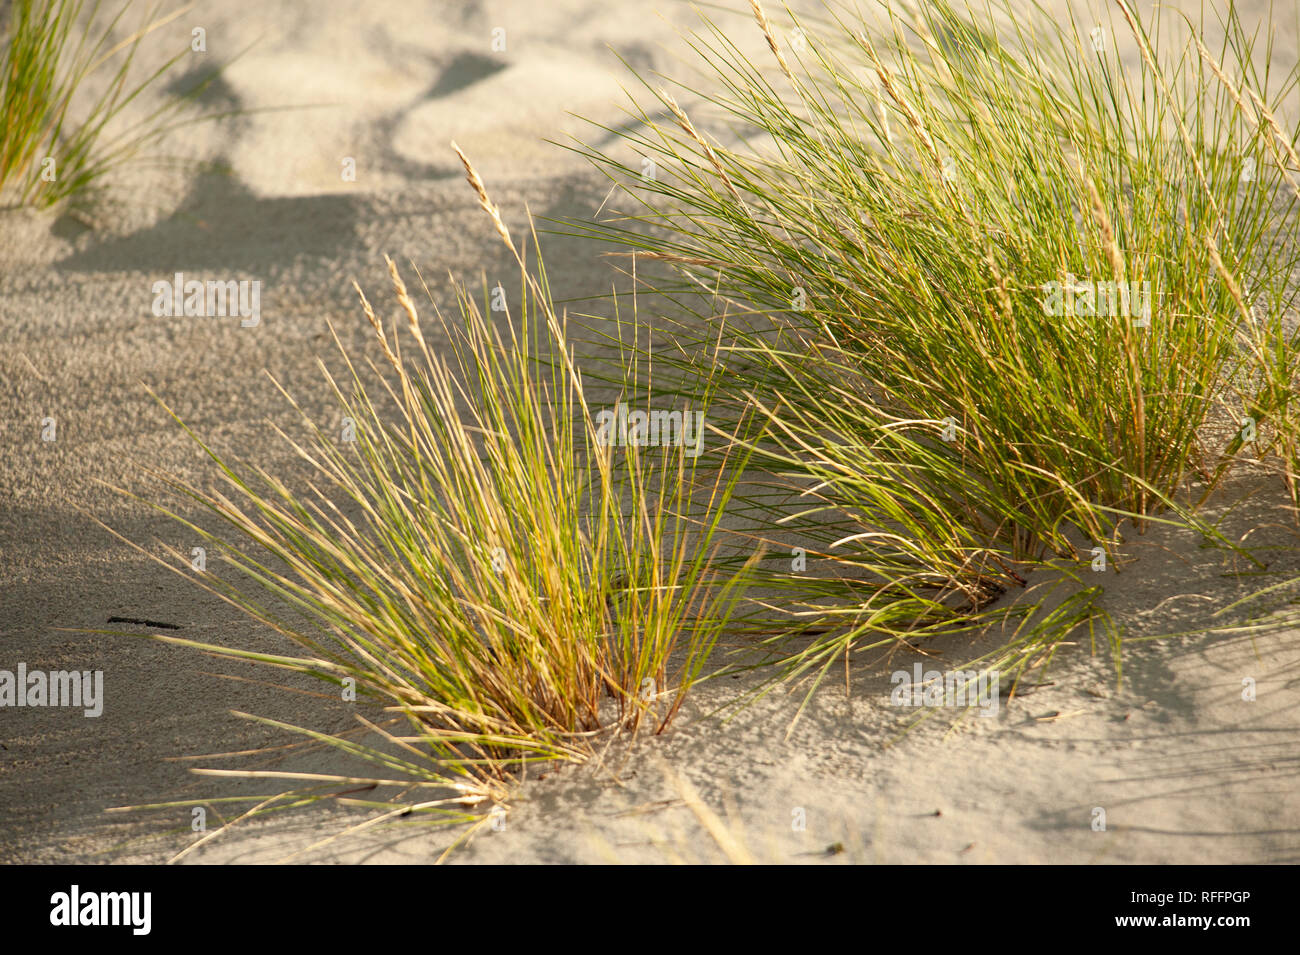 Tuft of grass growing in sand Stock Photo